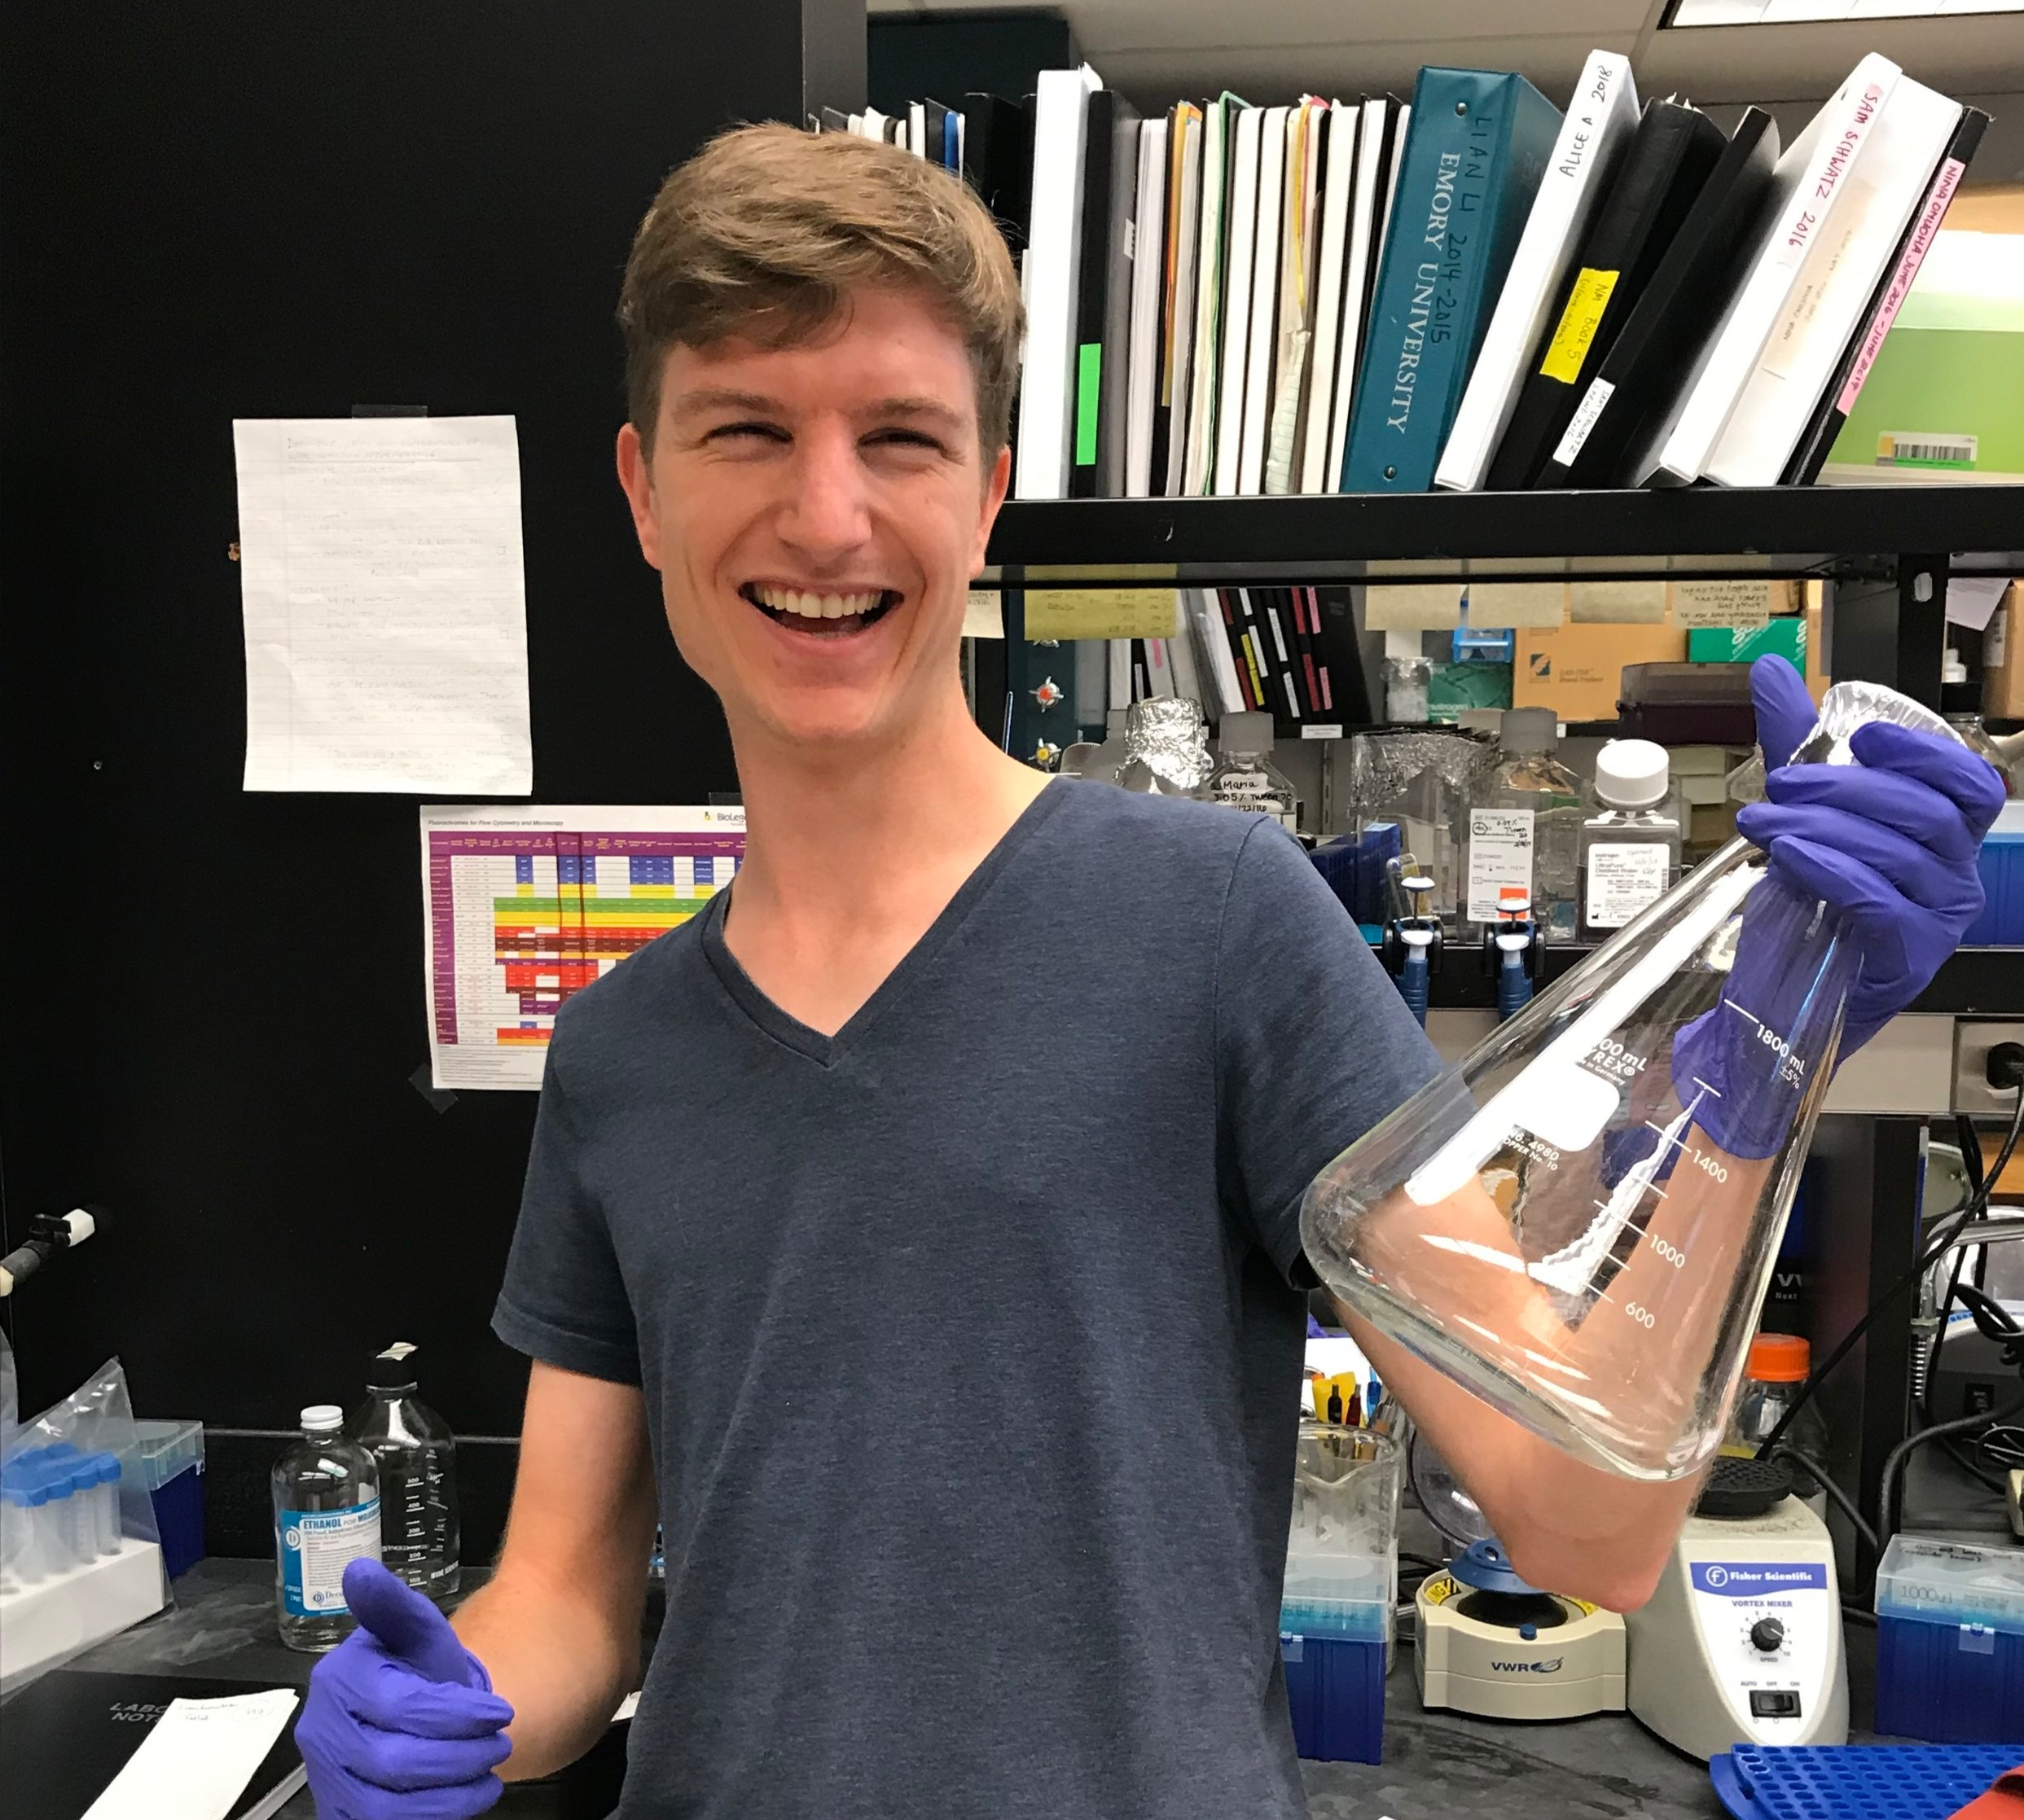 Baptiste Elie - Visiting StudentBaptiste spent the 2018/2019 academic year in the lab, as part of his Masters degree program at Ecole Normale Supérieure Paris-Saclay. In a collaborative project with Katia Koelle (Emory University Dept. of Biology), Baptiste worked to understand the implications of spatially structured viral spread for population genetics and diversity.